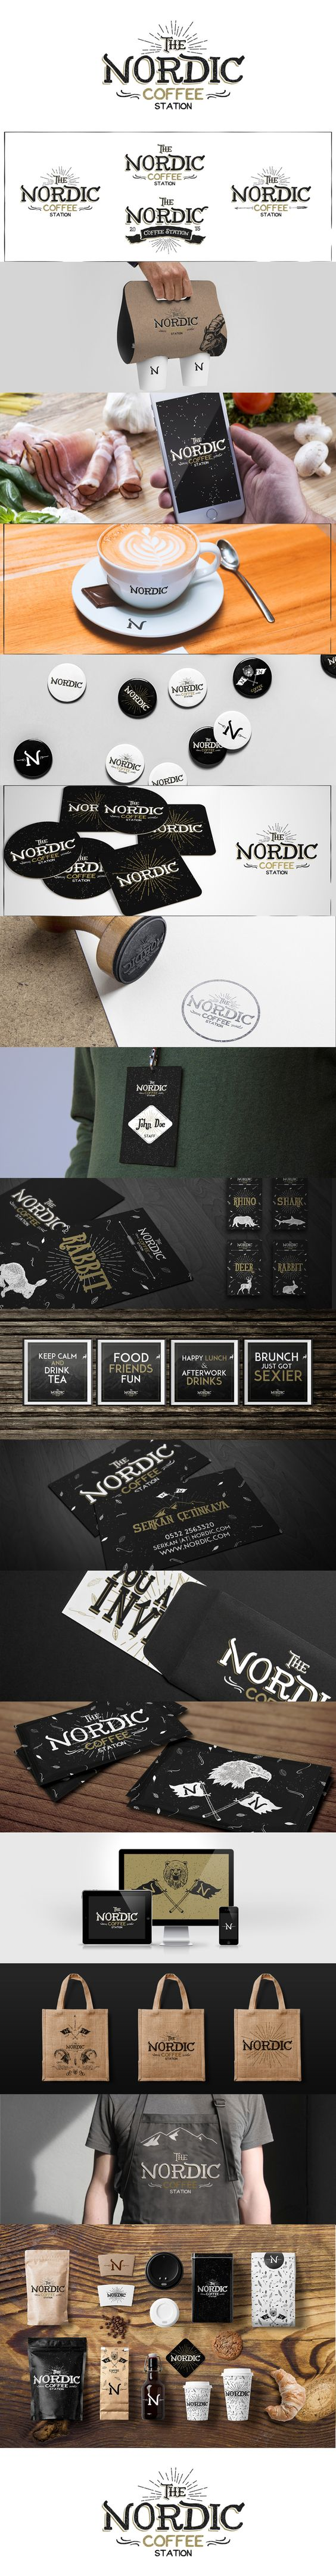 Nordic ' Coffee Station | Branding on Behance